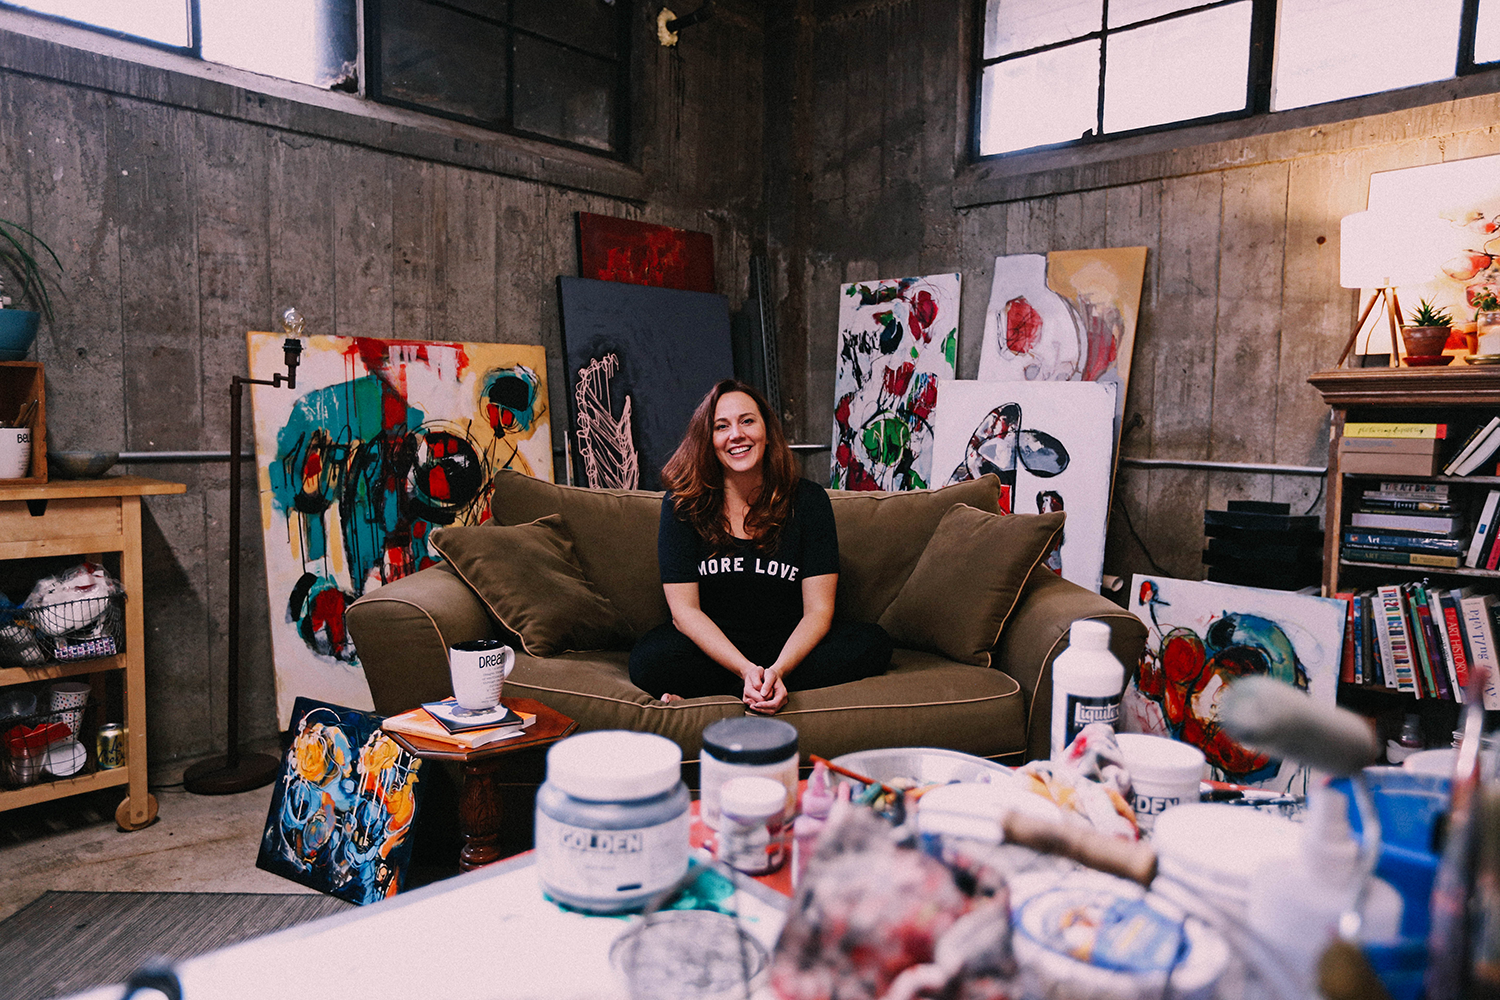 Angela Craven in her studio. Image courtesy of the artist.